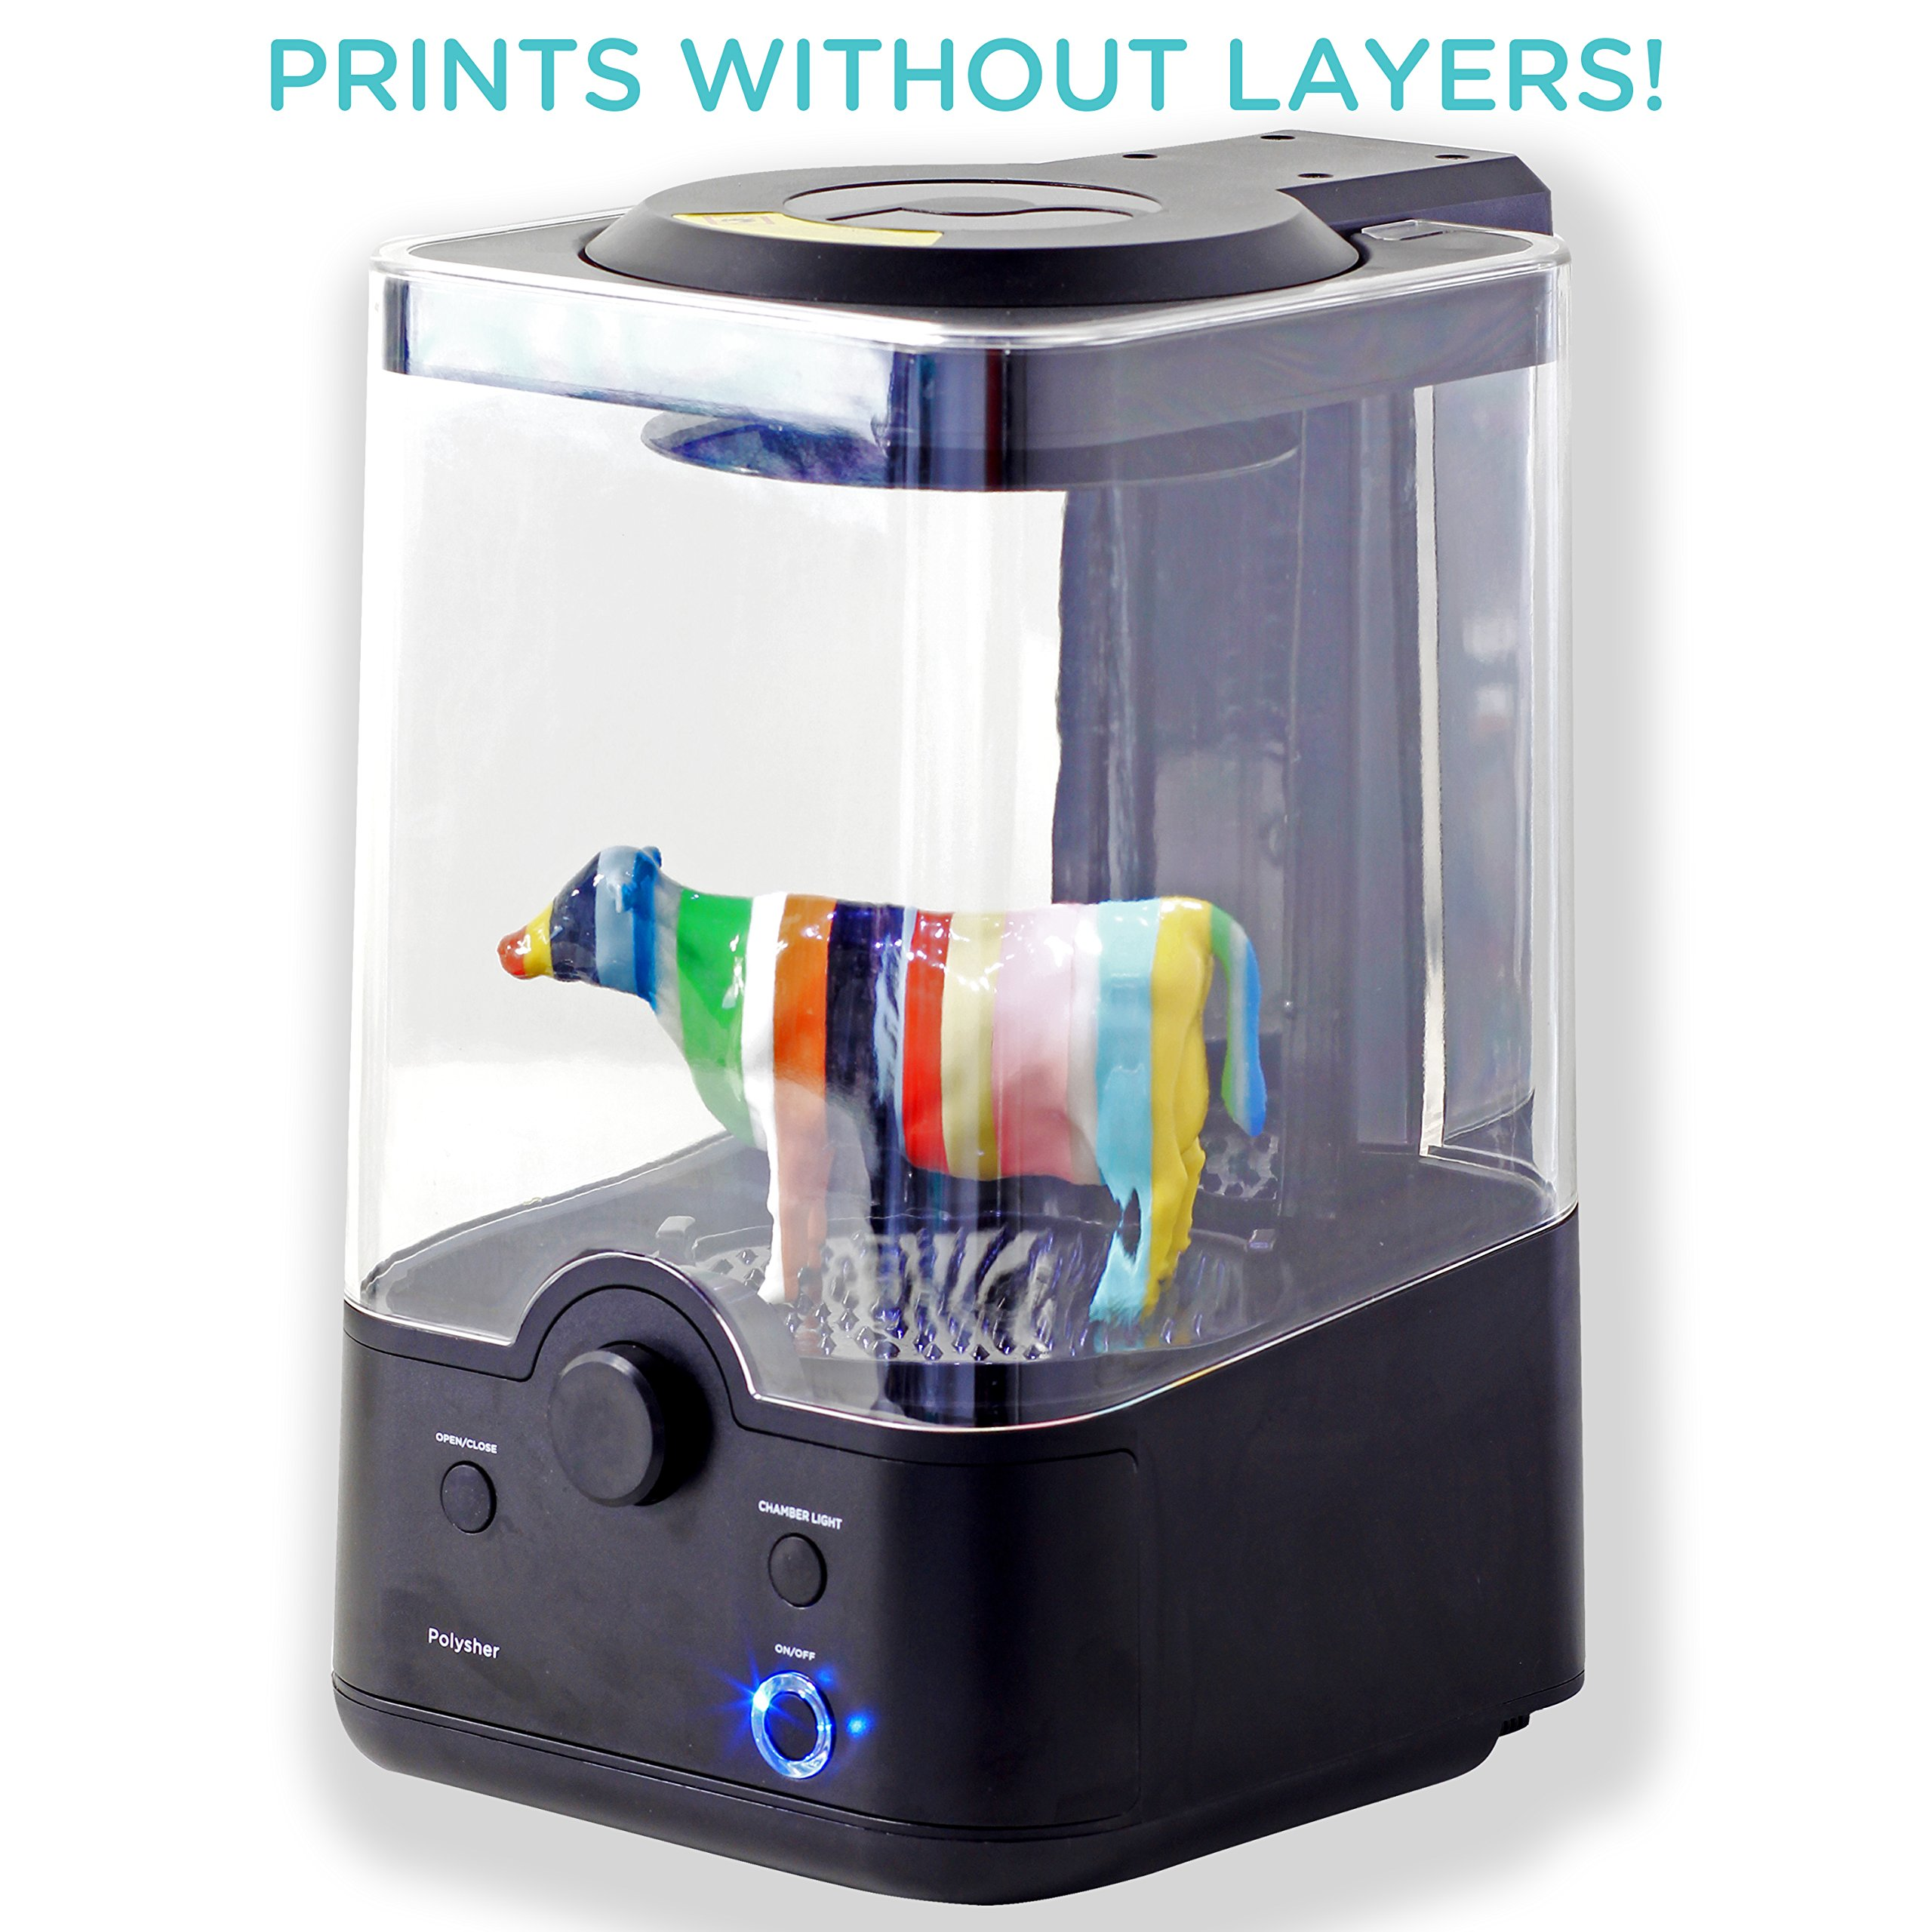 Polymaker Polysher, 3D Prints Polisher, Work with PolySmooth 3D Printer Filament to Create the Layer-Free Print Surface by Polymaker